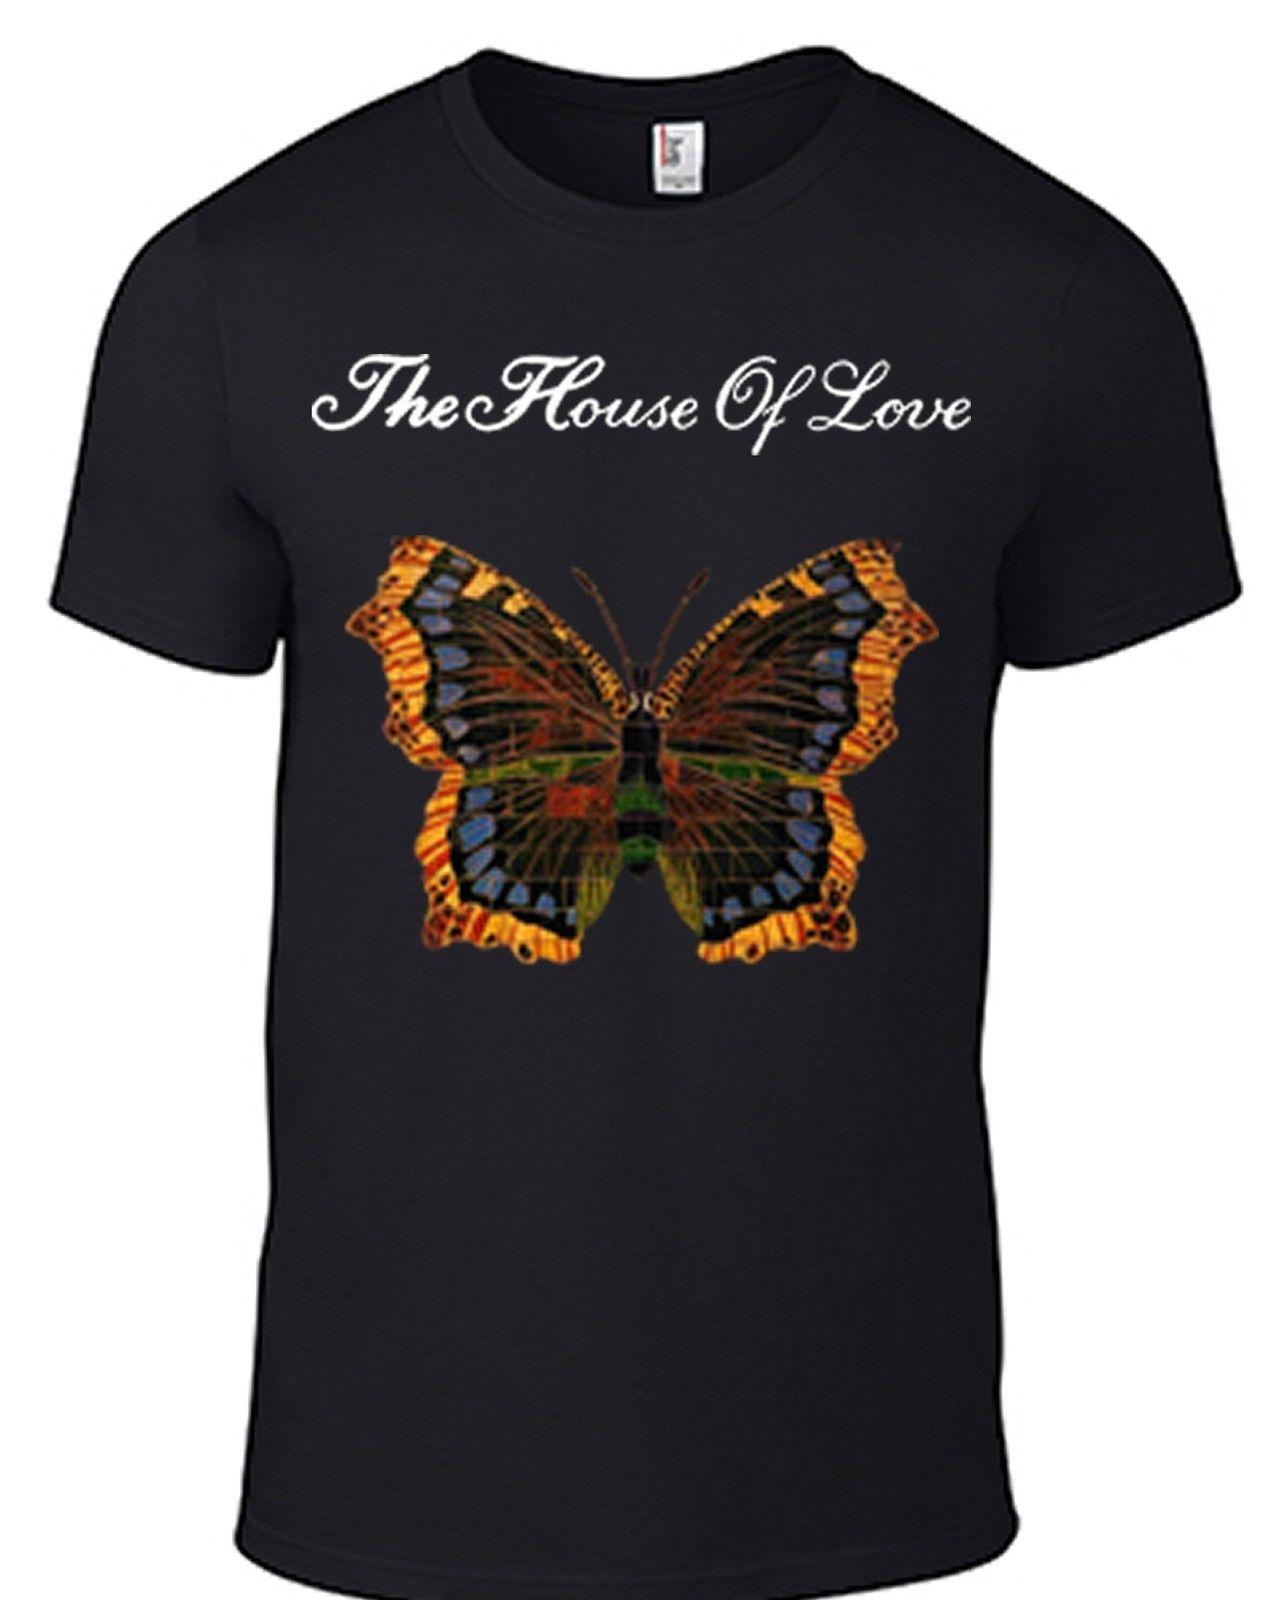 6e244f97 HOUSE OF LOVE Butterfly T Shirt Smiths Morrissey Pixies Ride Slowdive Cd  Men Women Unisex Fashion Tshirt Black Best T Shirts Shirts Online From ...